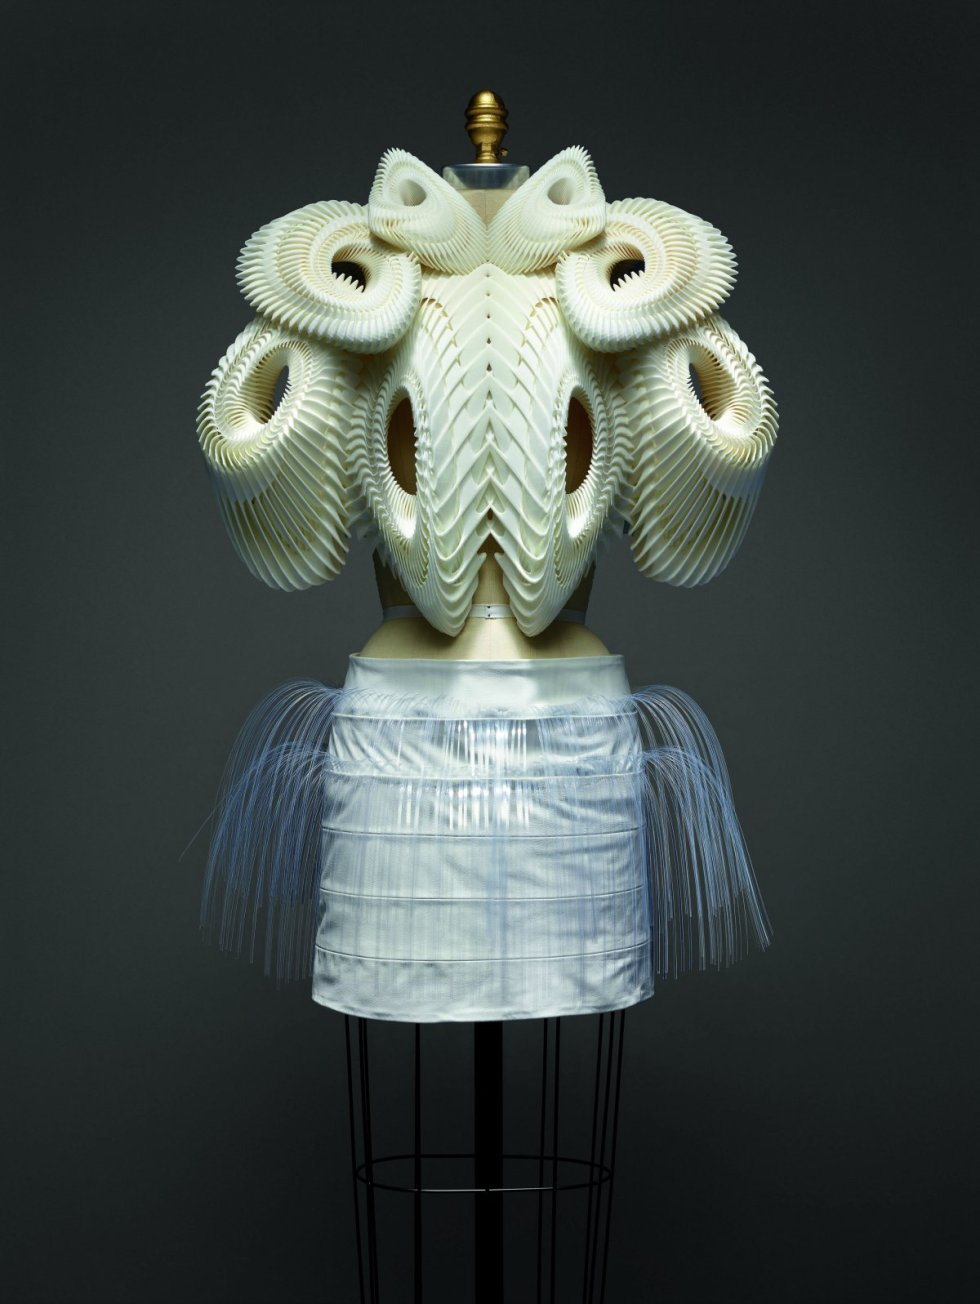 called-ensemble-this-futuristic-dress-also-by-van-herpen-is-part-of-her-wearable-3d-printed-2010-haute-couture-line